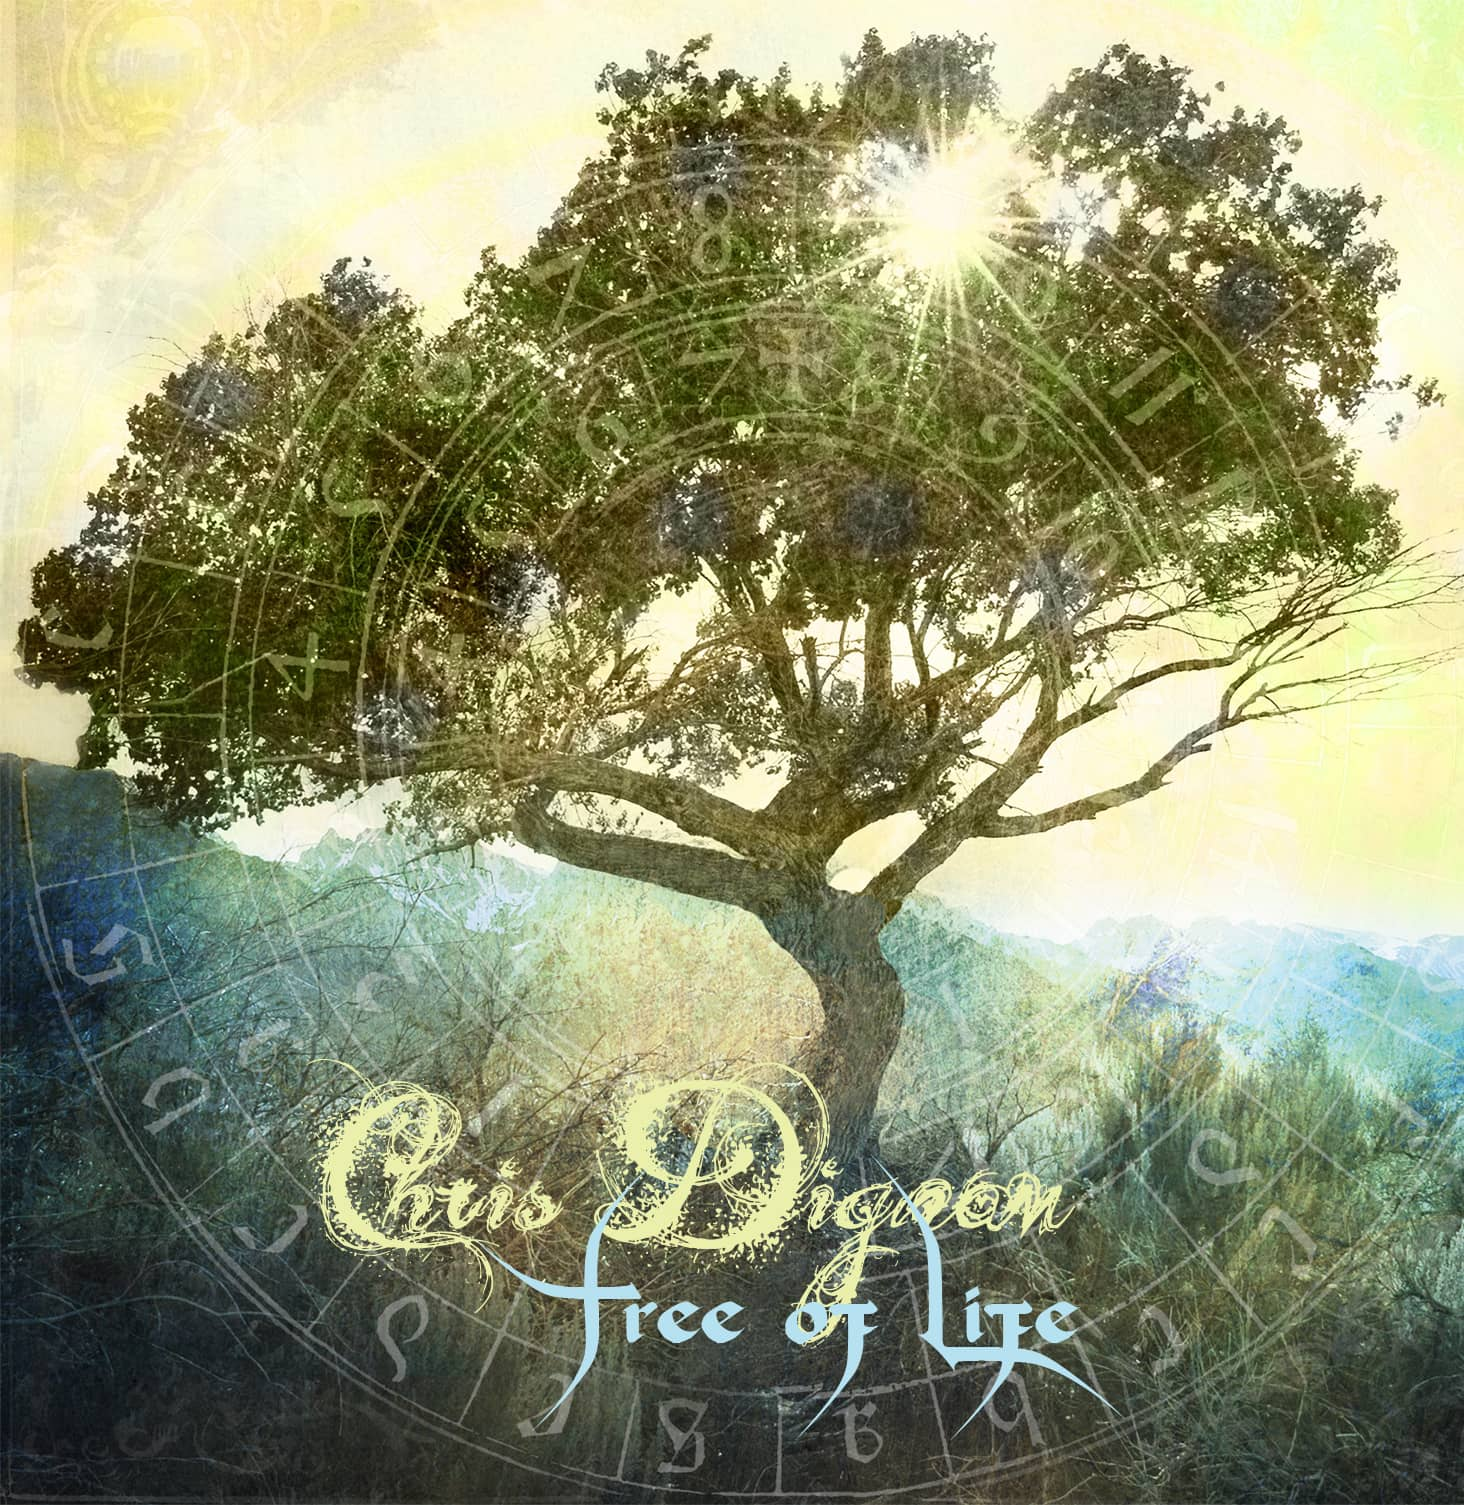 Tree of Life Cover - Chris Dignam